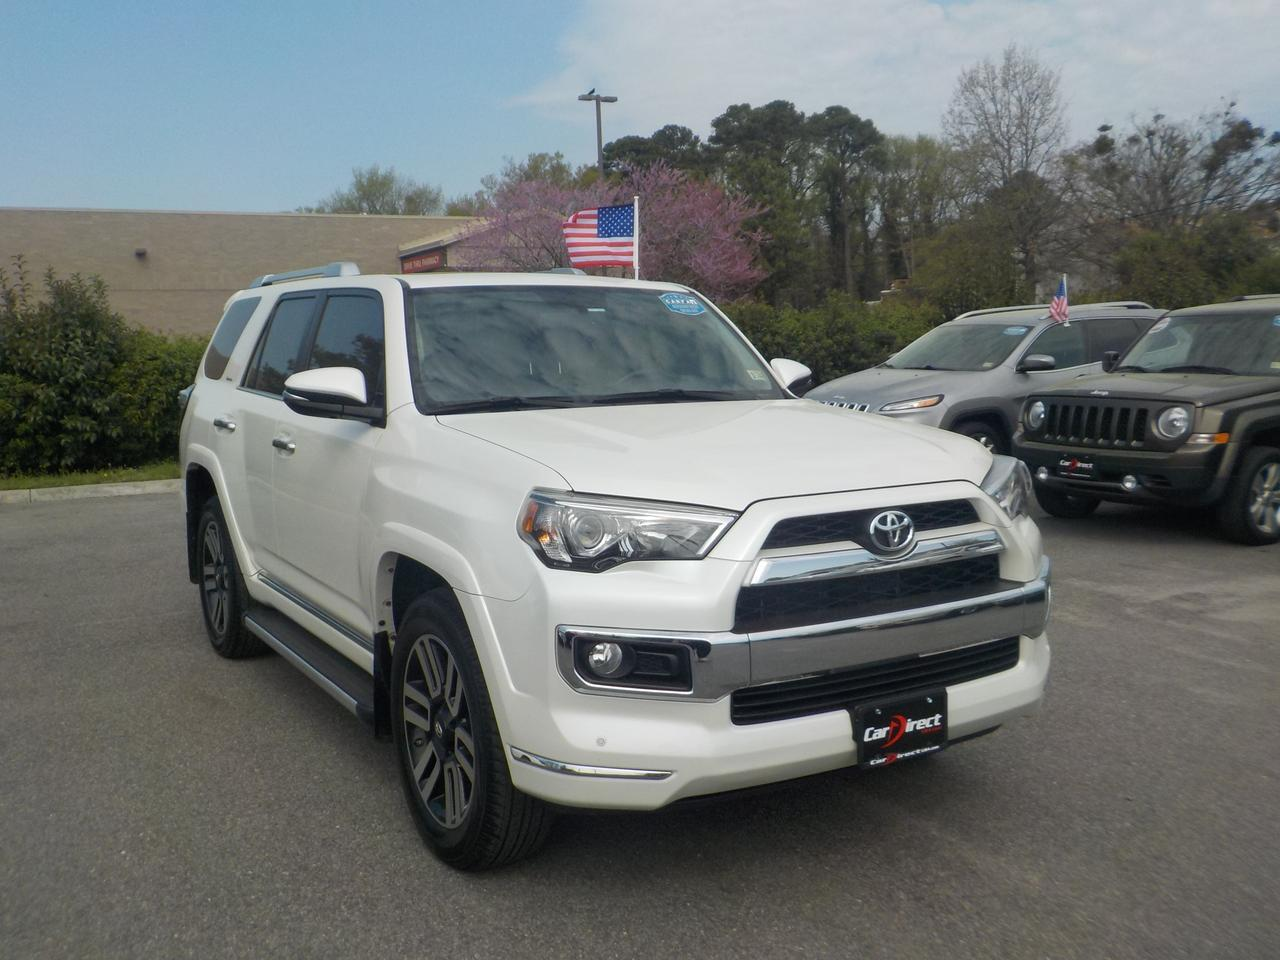 2016 TOYOTA 4RUNNER LIMITED 4X4, 3RD ROW, LEATHER HEATED & COOLED SEATS, NAVIGATION, TOW PKG,  SUNROOF, ONLY 42K MILES! Virginia Beach VA